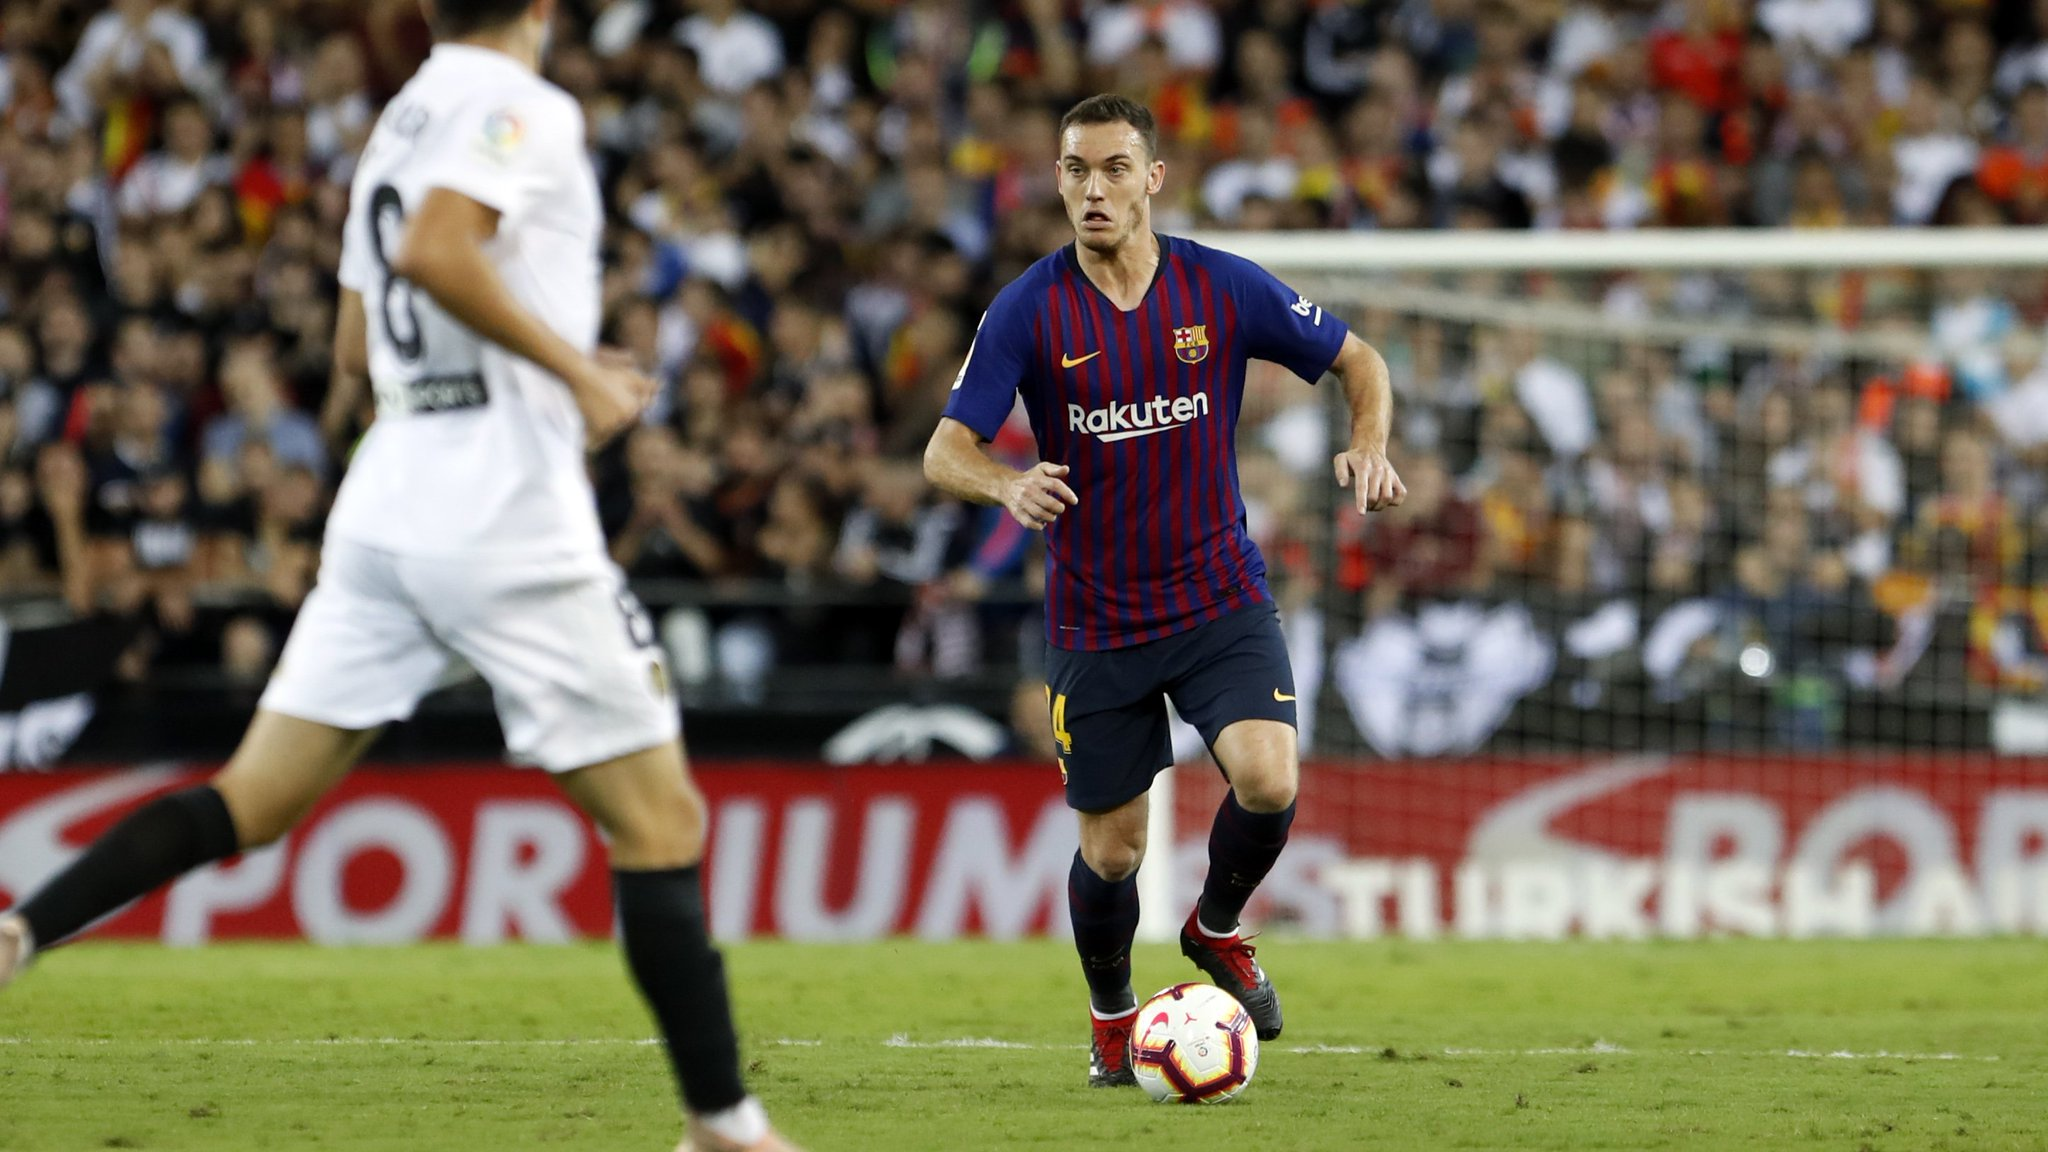 �� The second half is under way in Mestalla!  ⚽ #ValenciaBarça (1-1) https://t.co/w7Ki5frqXG